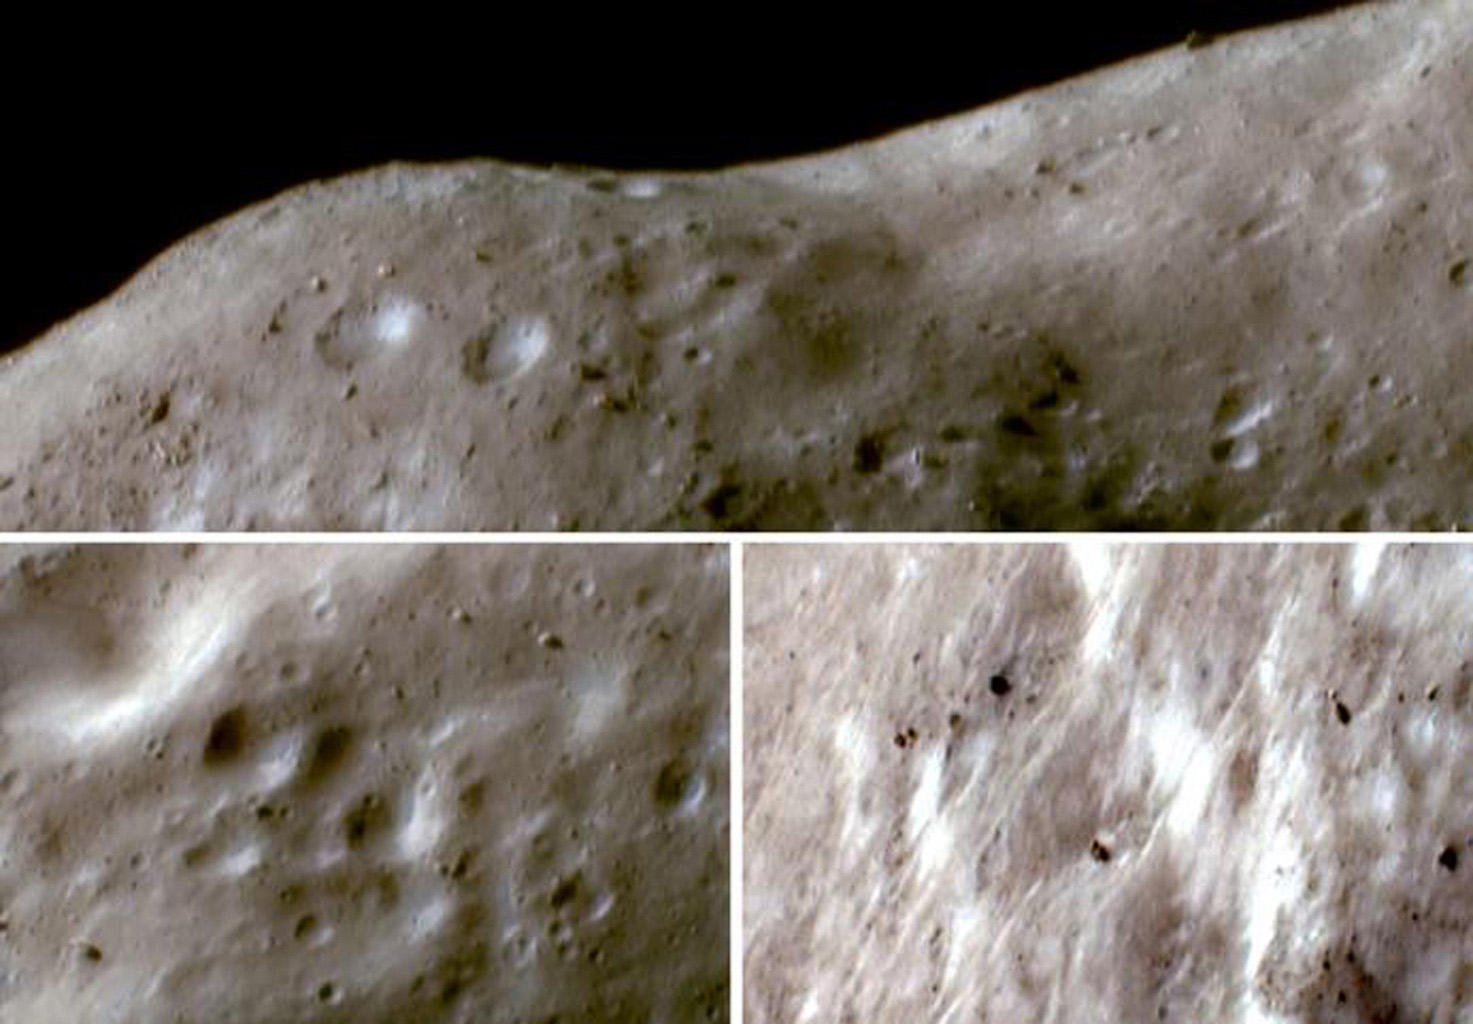 These images of asteroid Eros, taken by NASA's NEAR Shoemaker on Oct. 16, 2001, show surface materials darkened and reddened by solar wind and micrometeorite impacts appearing pale brown; fresher materials on steep slopes appear in bright whites or blues.